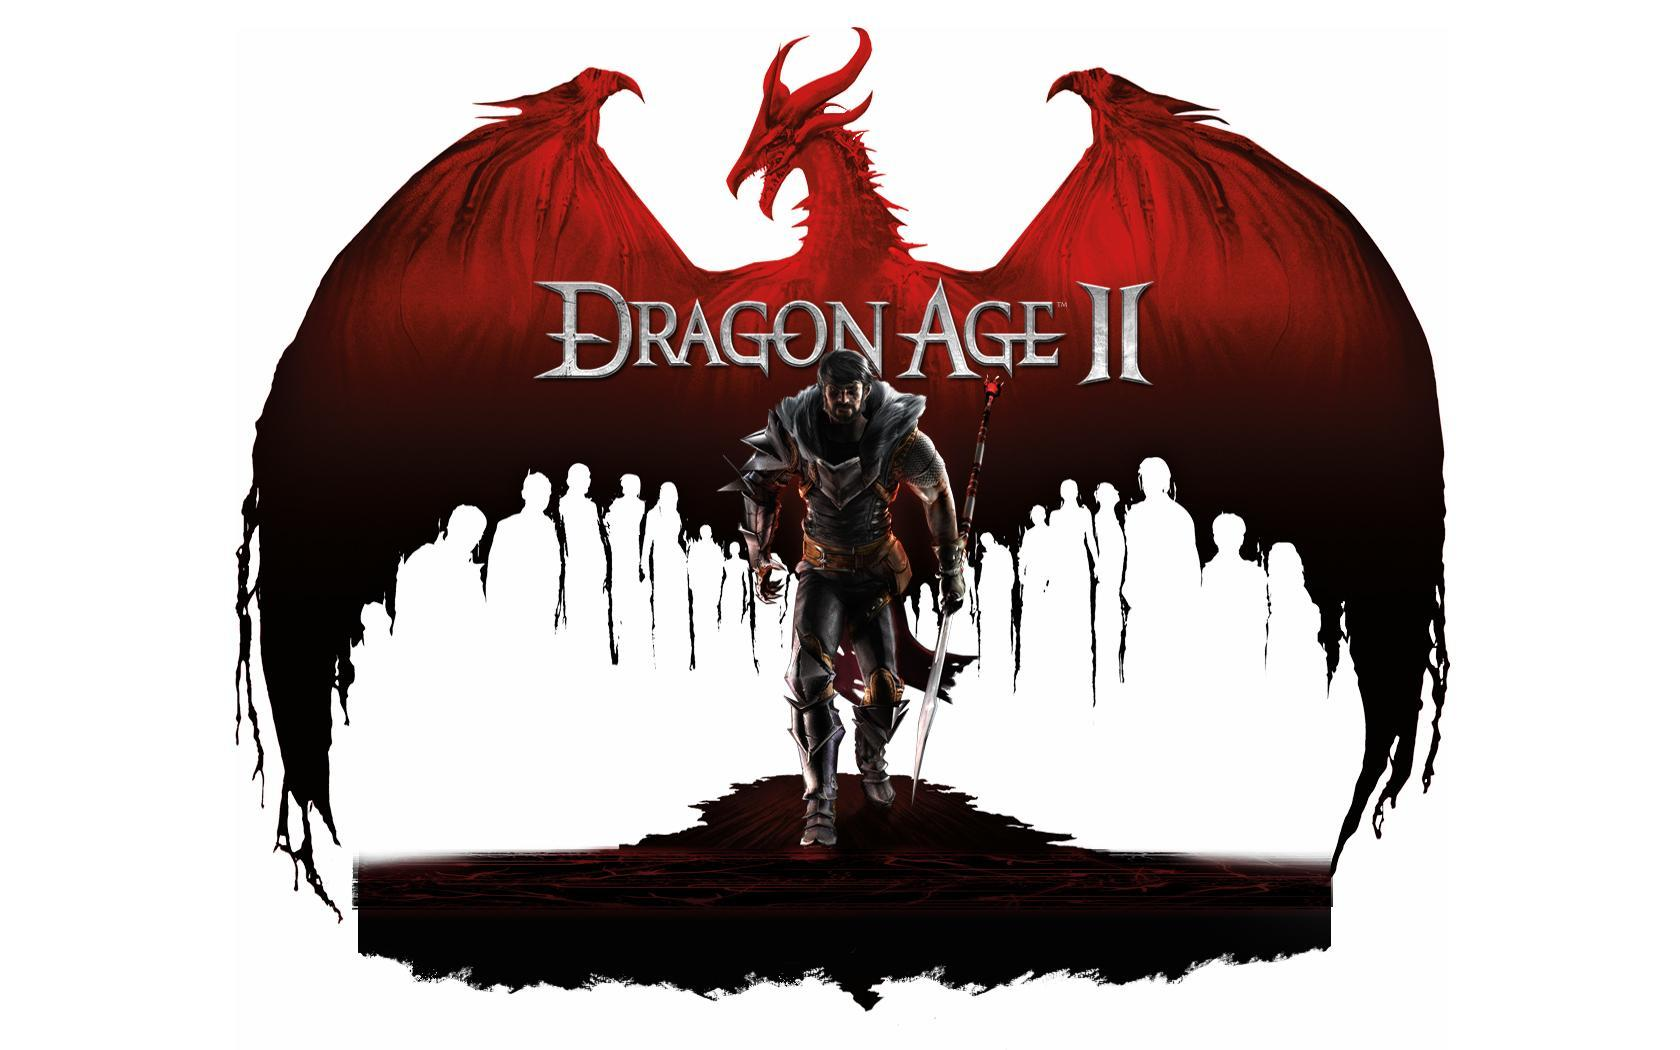 Dragon age 2 dragon age origins 26540227 1680 1050